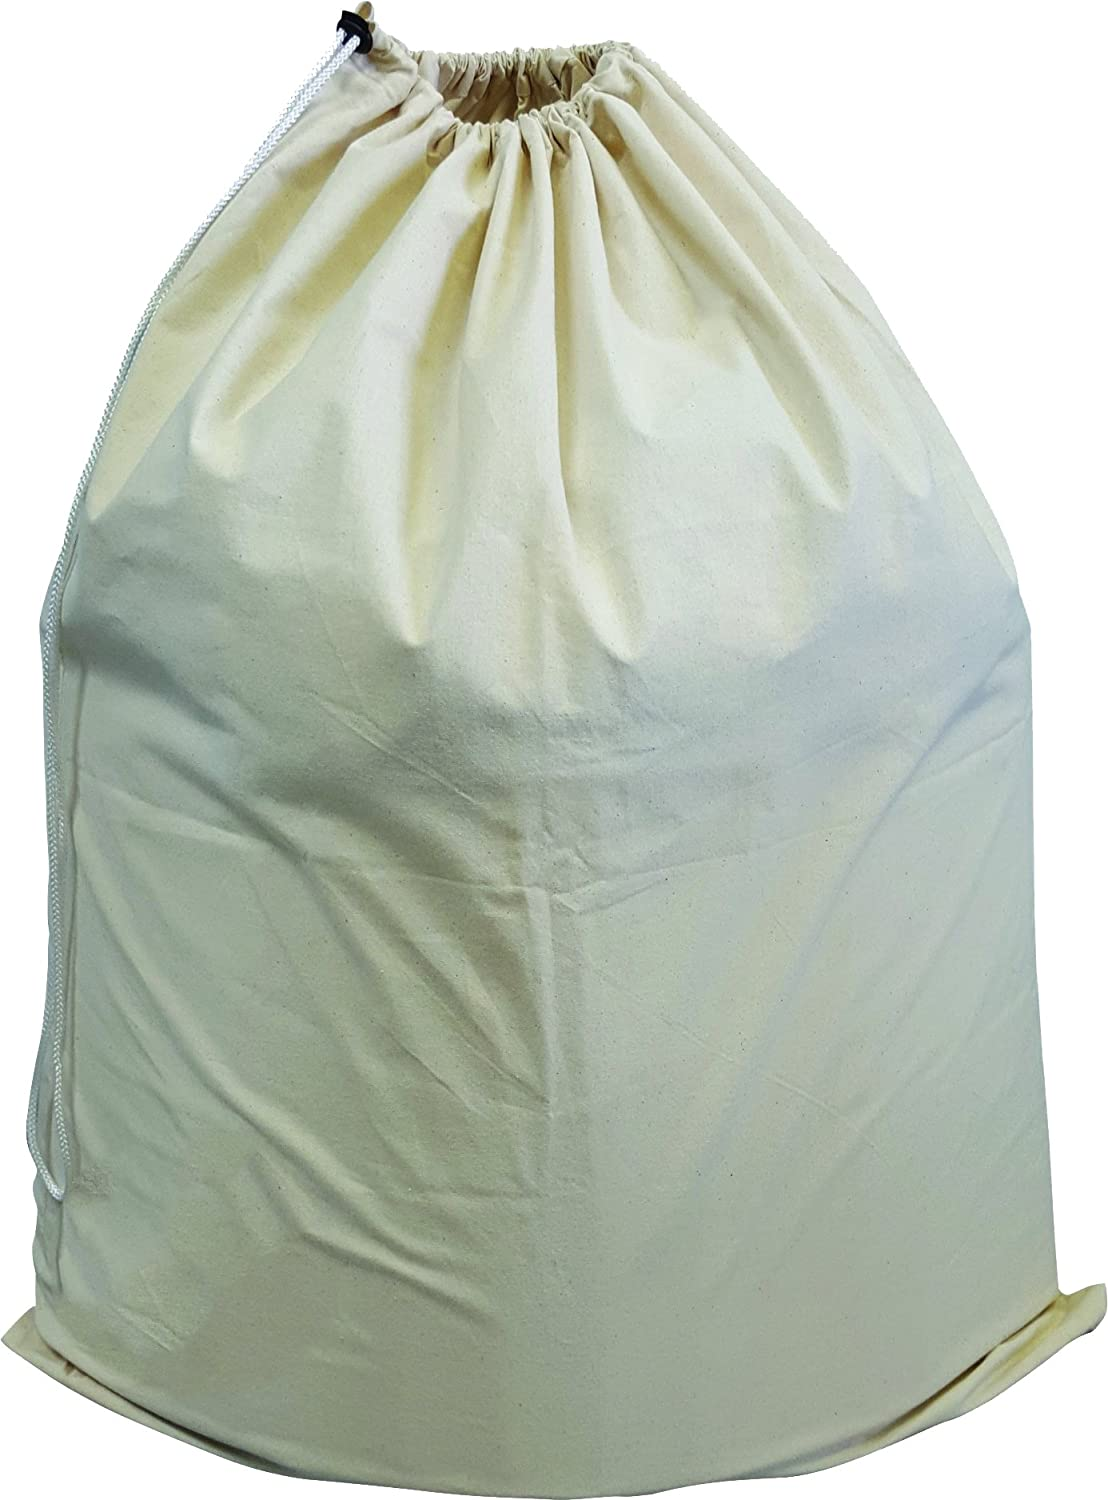 Green Earth Bags Extra Large Cotton Canvas Laundry Bag, 28 x 36 with Drawstring Closure, Washable Fiberlinks Textiles Inc GEB2836/ALB/1